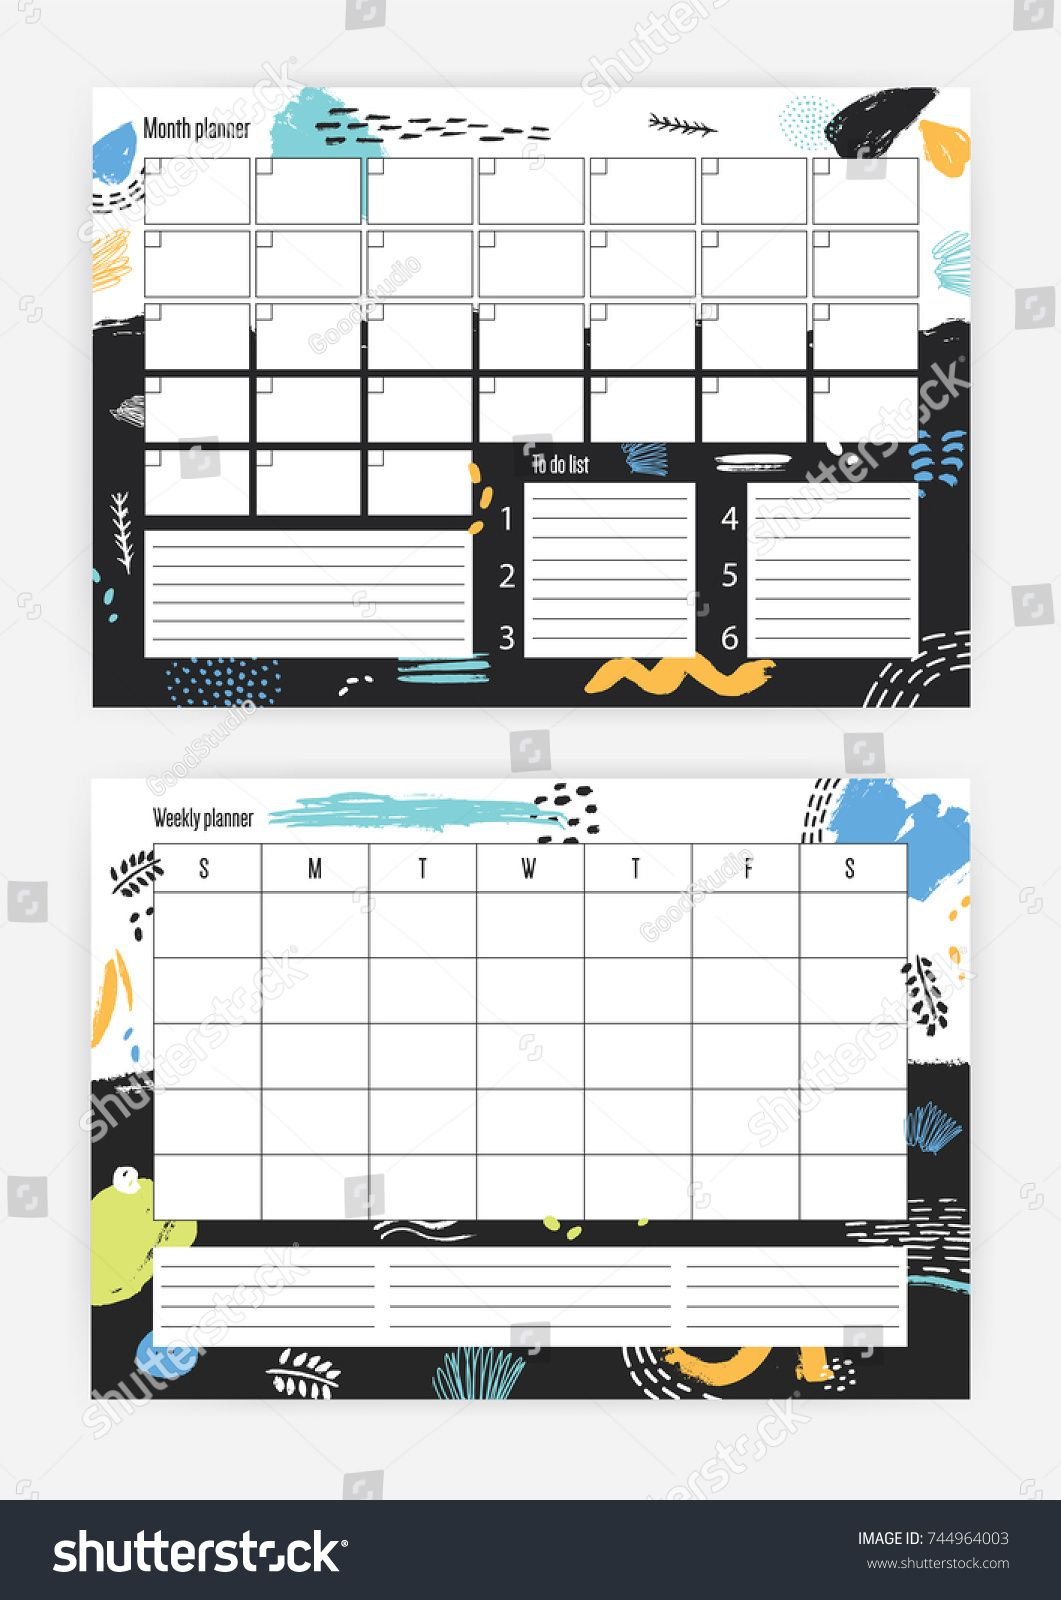 Set Of Horizontal Month And Weekly Planner Templates With Week